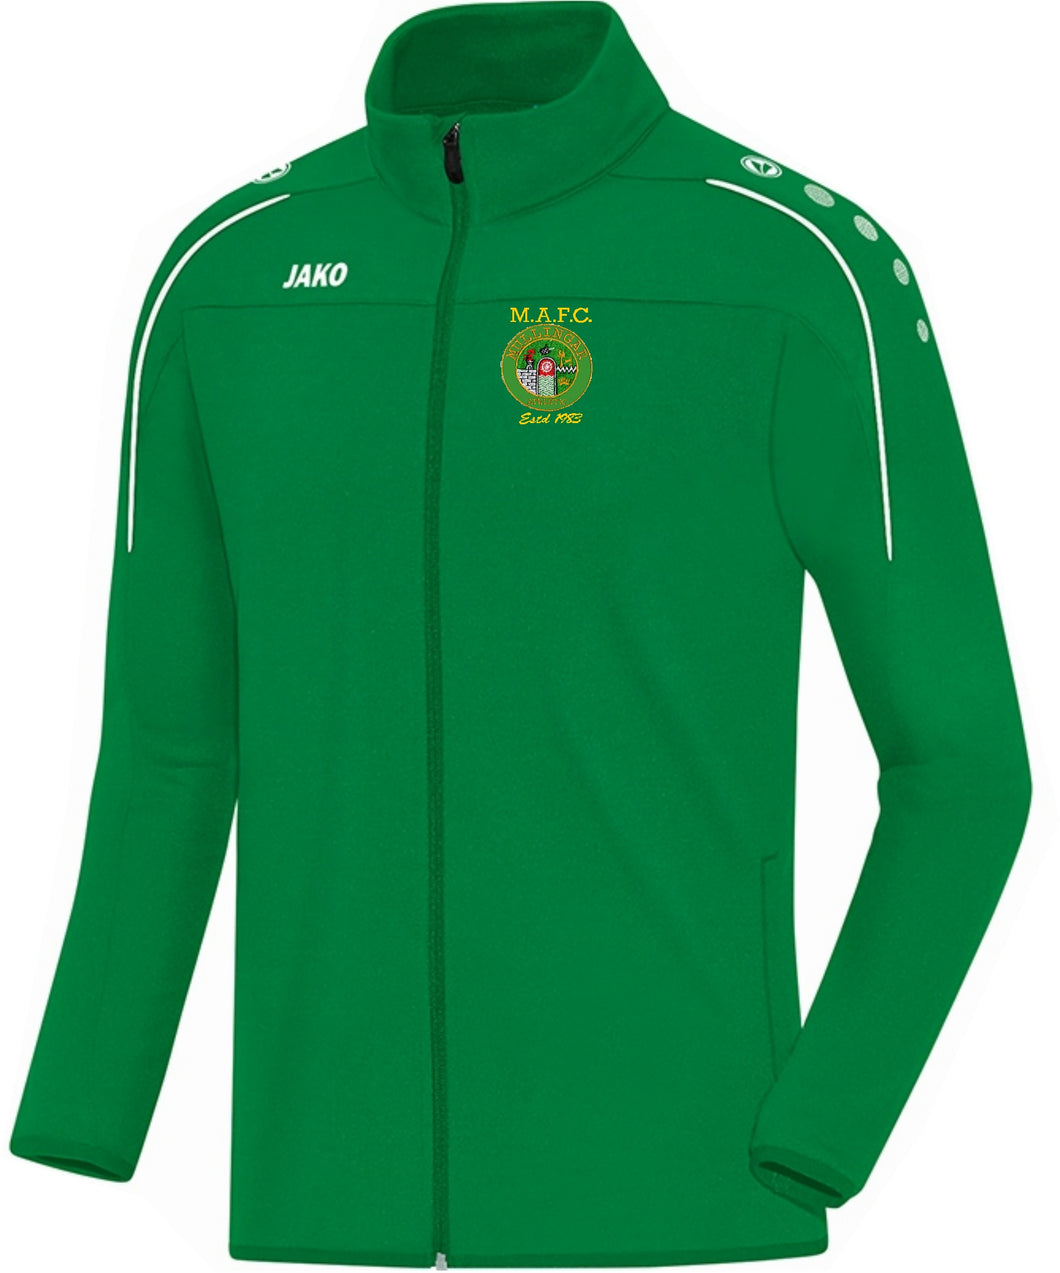 KIDS MULLINGAR ATHLETIC TRAINING JACKET MA8750K GREEN